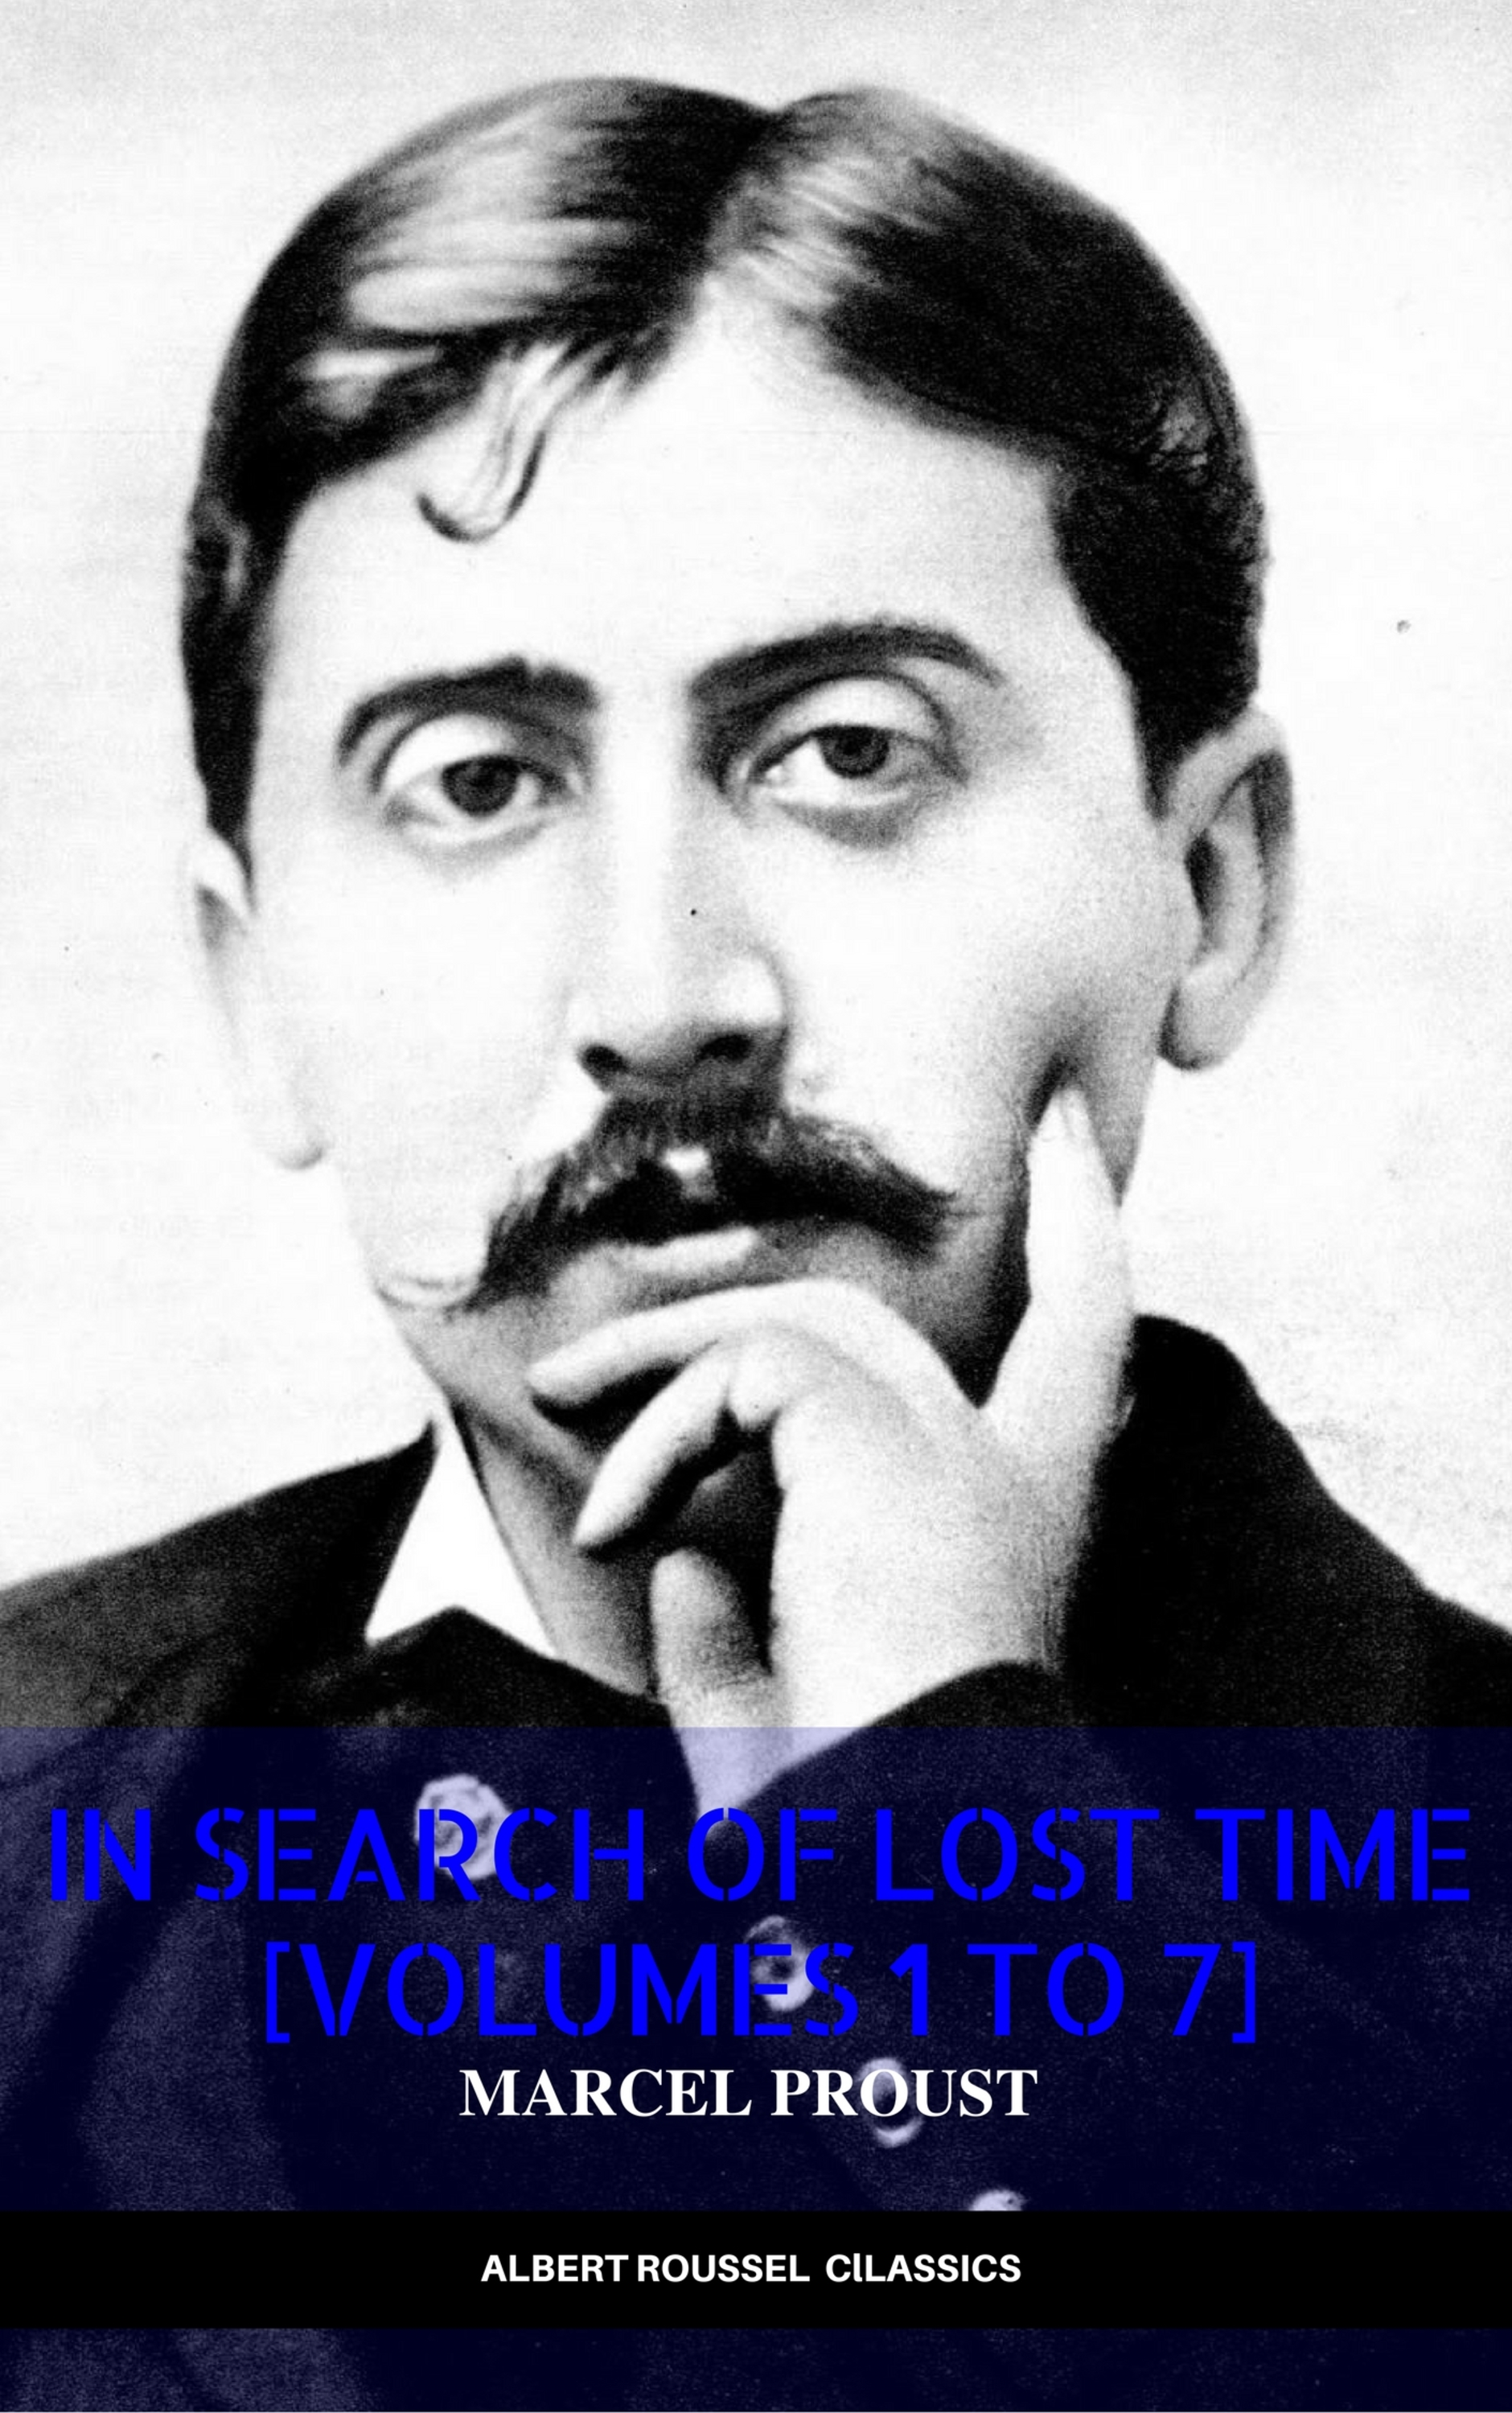 Marcel Proust In Search of Lost Time [volumes 1 to 7] (XVII Classics) (The Greatest Writers of All Time) in search of the double sunderland afc 1912 13